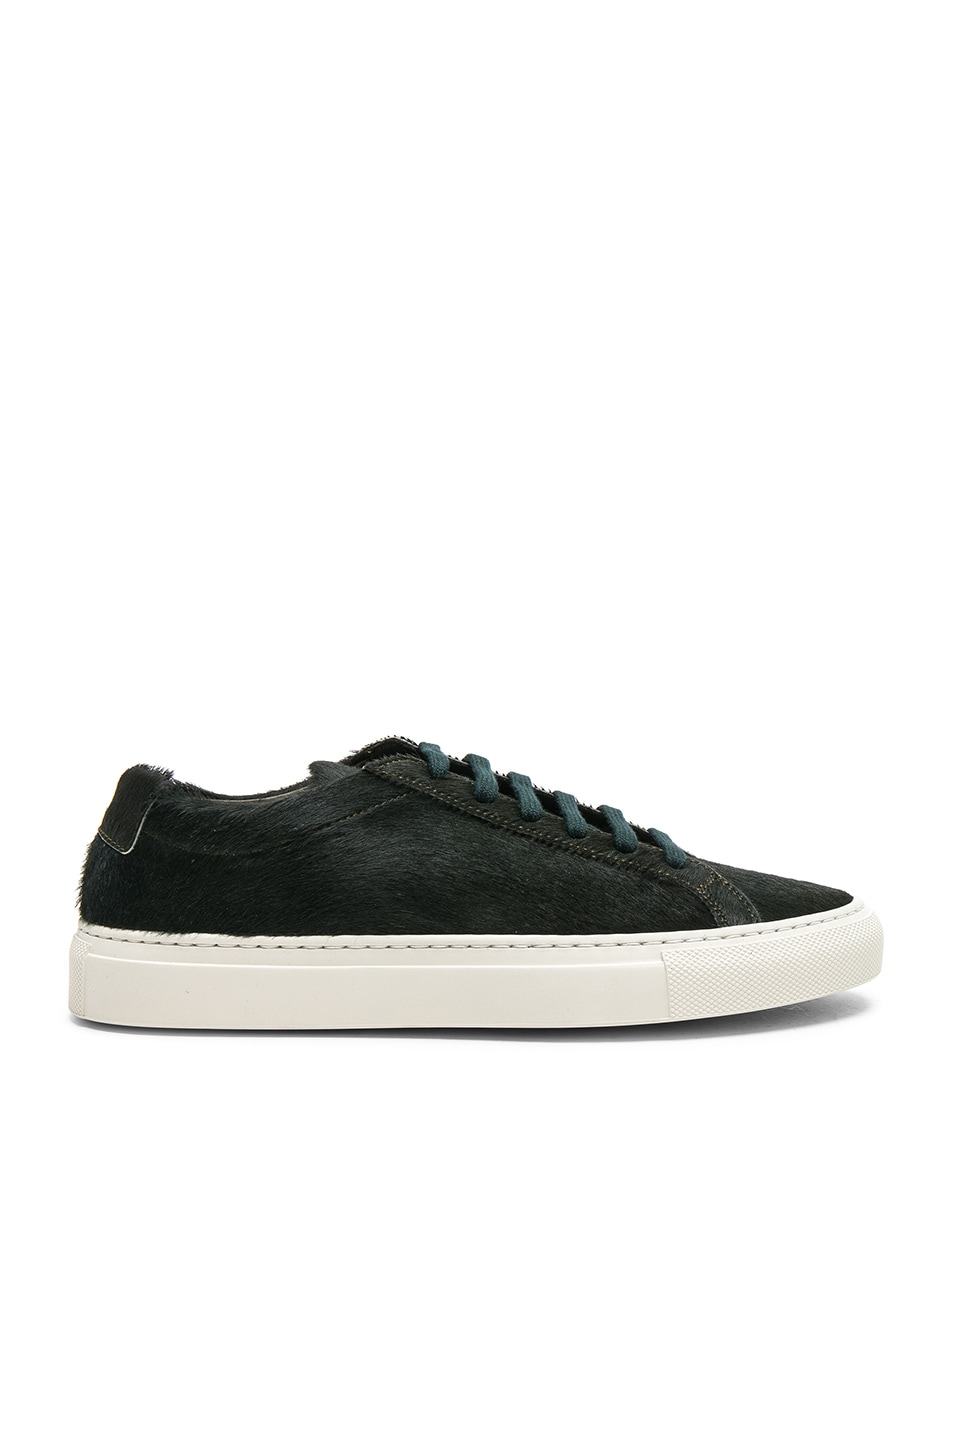 Image 1 of Common Projects Original Calf Hair Achilles Low in Green